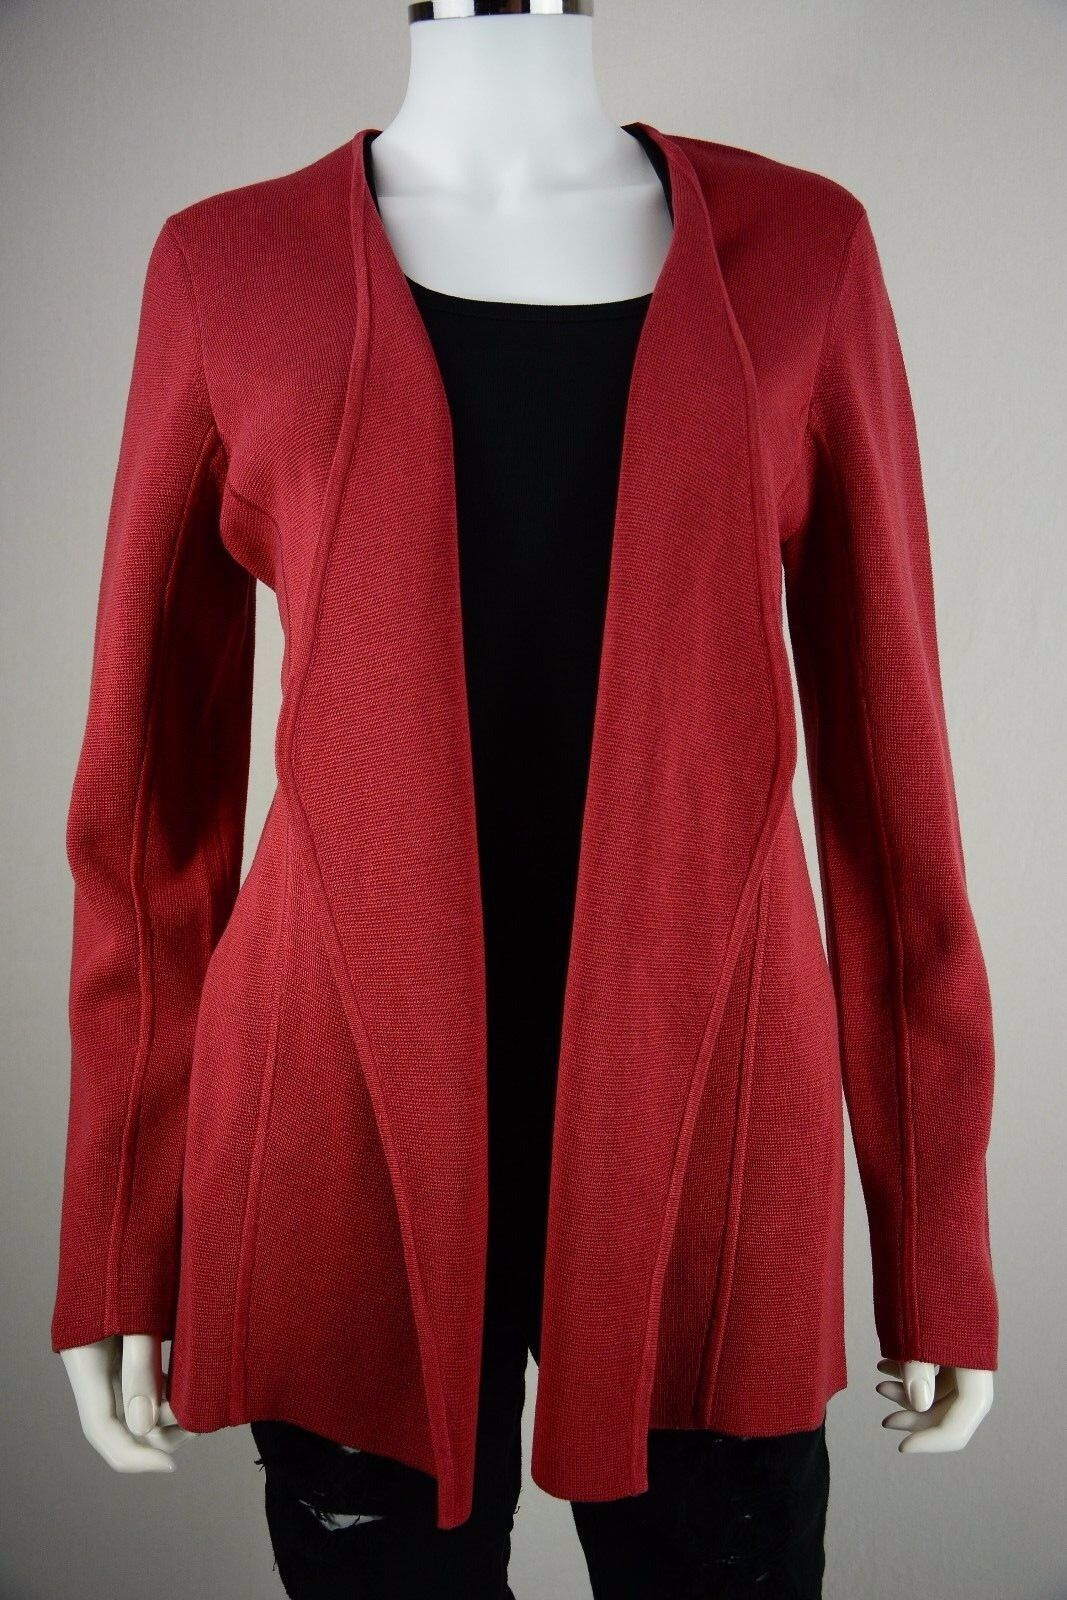 Women's Eileen Fisher Petites size Large PL Red Open Silk Shawl Sweater NWT